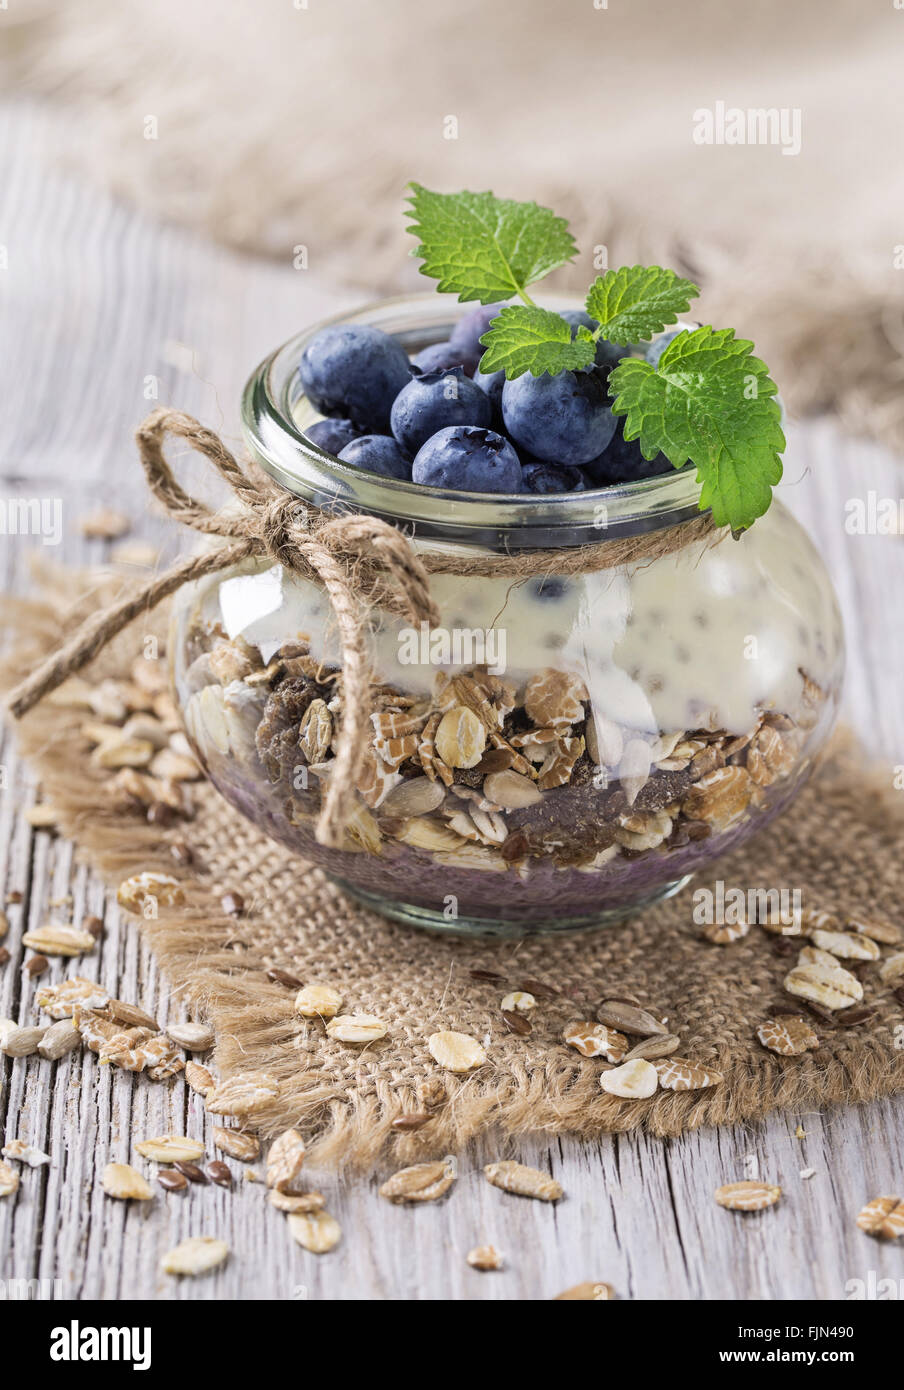 Chia seeds pudding with  blueberries - Stock Image